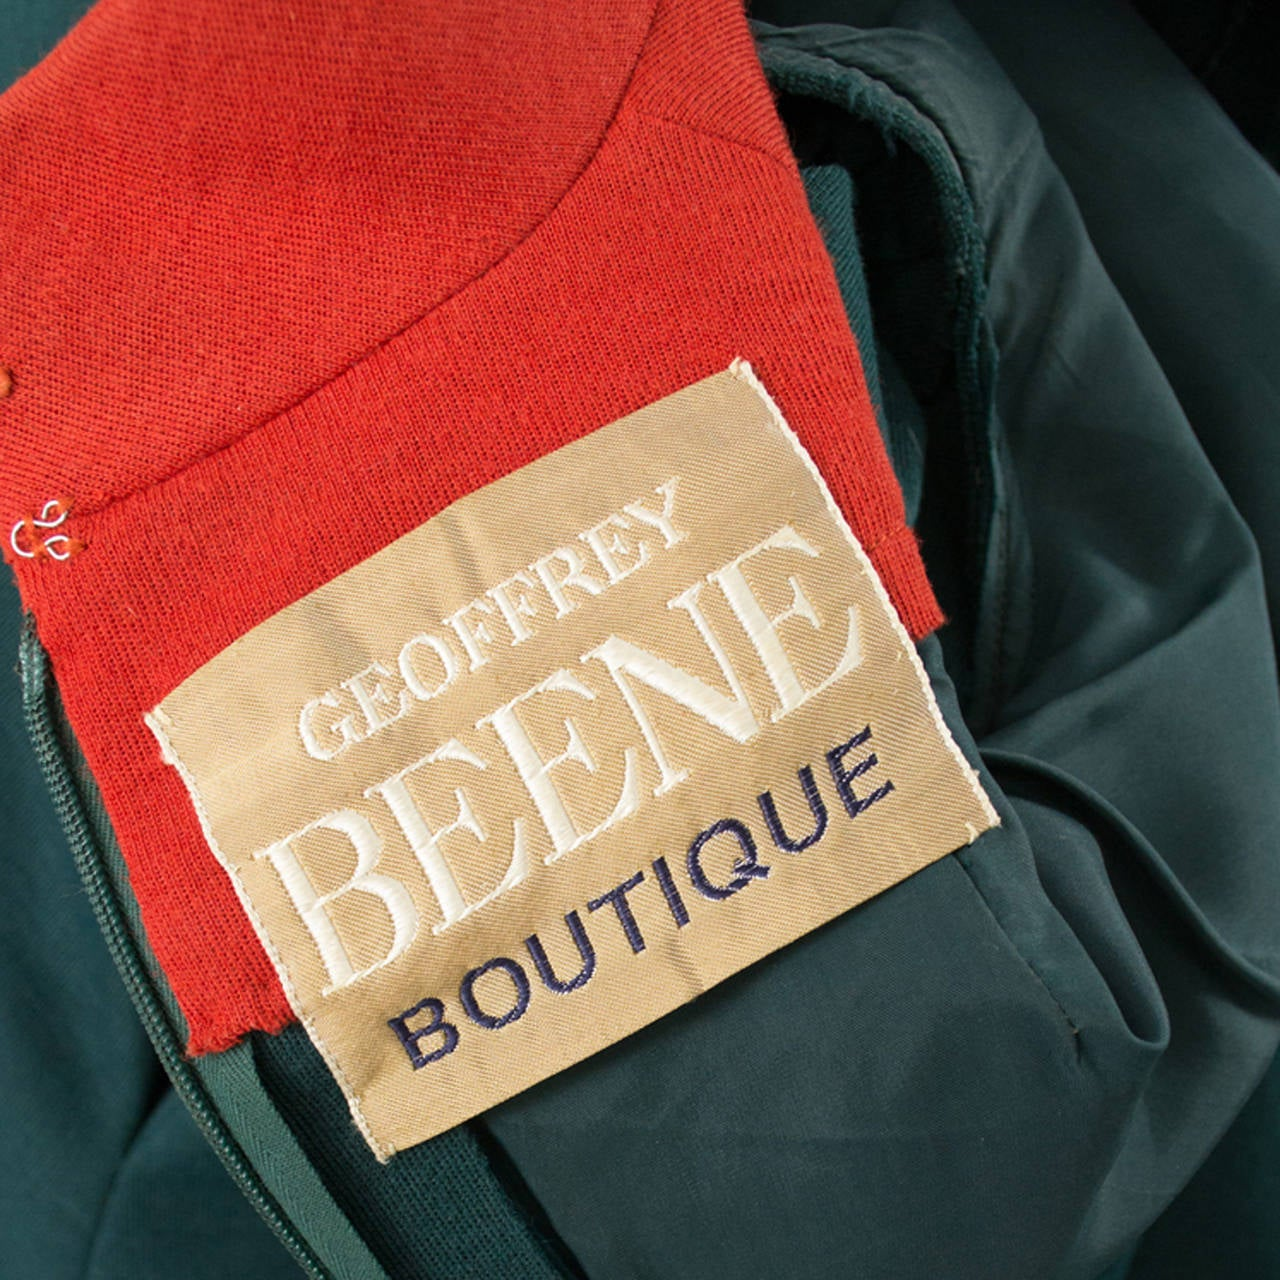 Geoffrey Beene Boutique Vintage Dress Red Green Early 1970s In Excellent Condition For Sale In Portland, OR